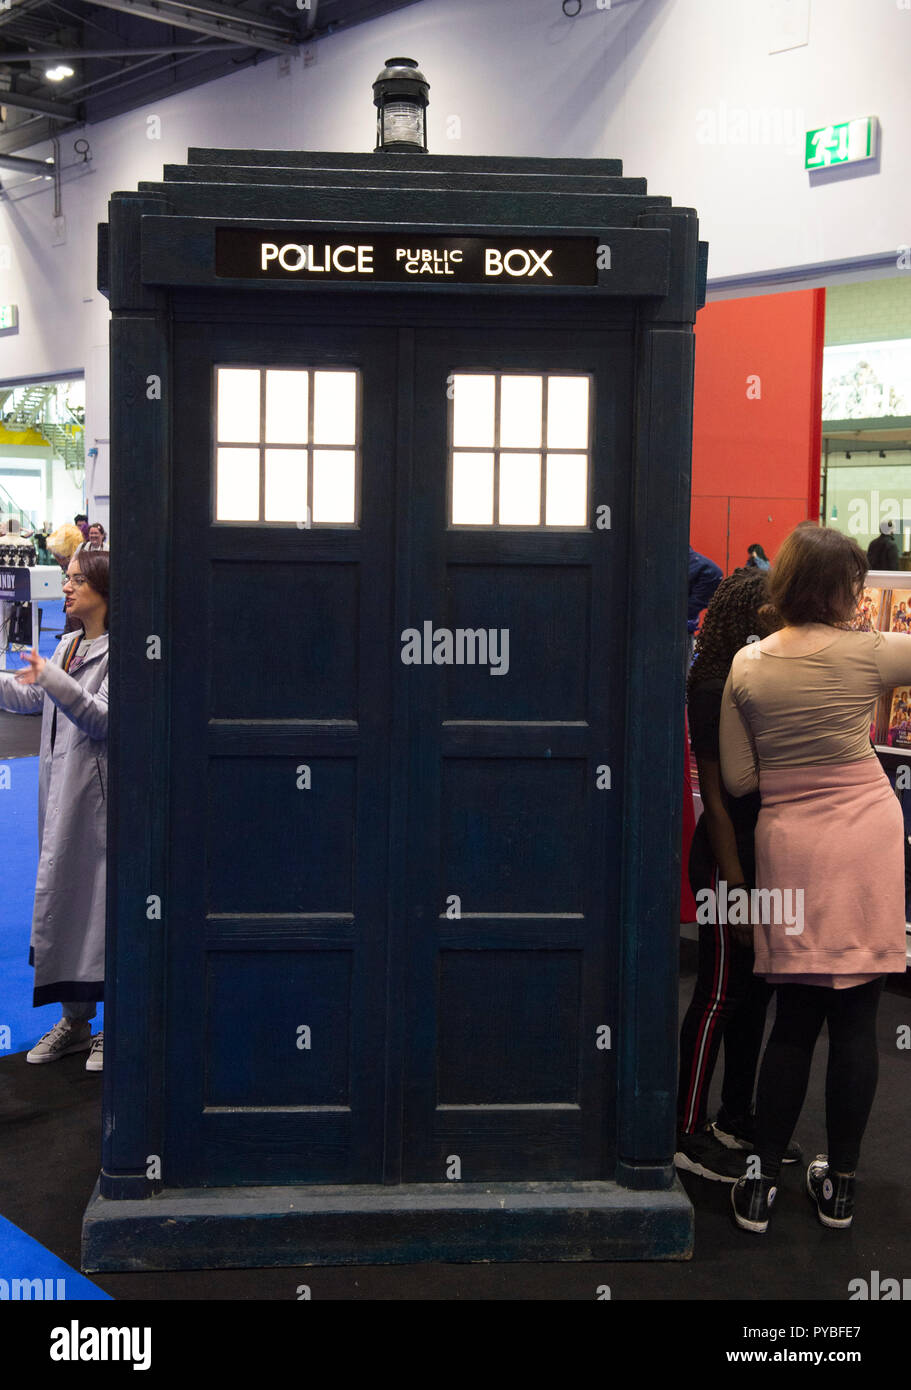 ExCel, London, UK. 26 October, 2018. Three day MCM Comic Con, comic book and cosplay event, opens at ExCel with many visitors in elaborate cosplay costume. Dr Who Tardis drops in. Credit: Malcolm Park/Alamy Live News. - Stock Image